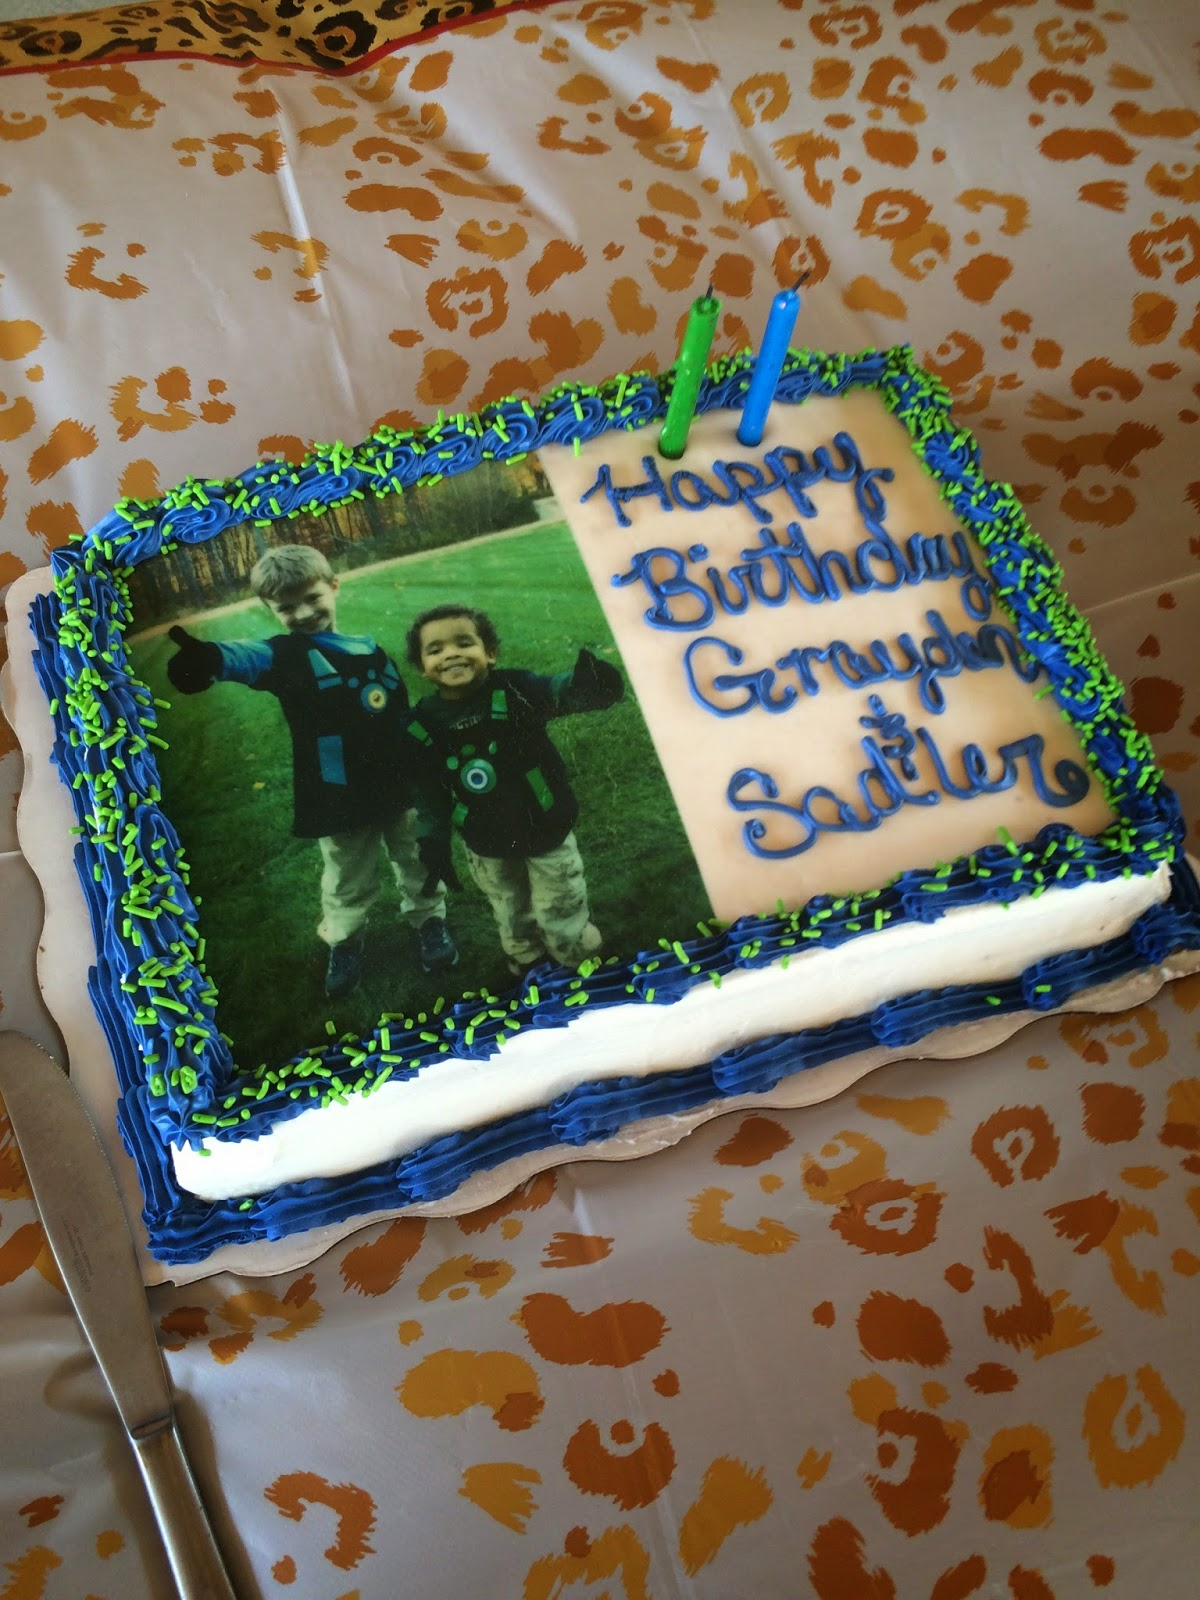 I Had A Hard Time Coming Up With Cake Idea So Instead Walmart Did This Photo Picture Of Them In Their Wild Kratt Costumes From Halloween